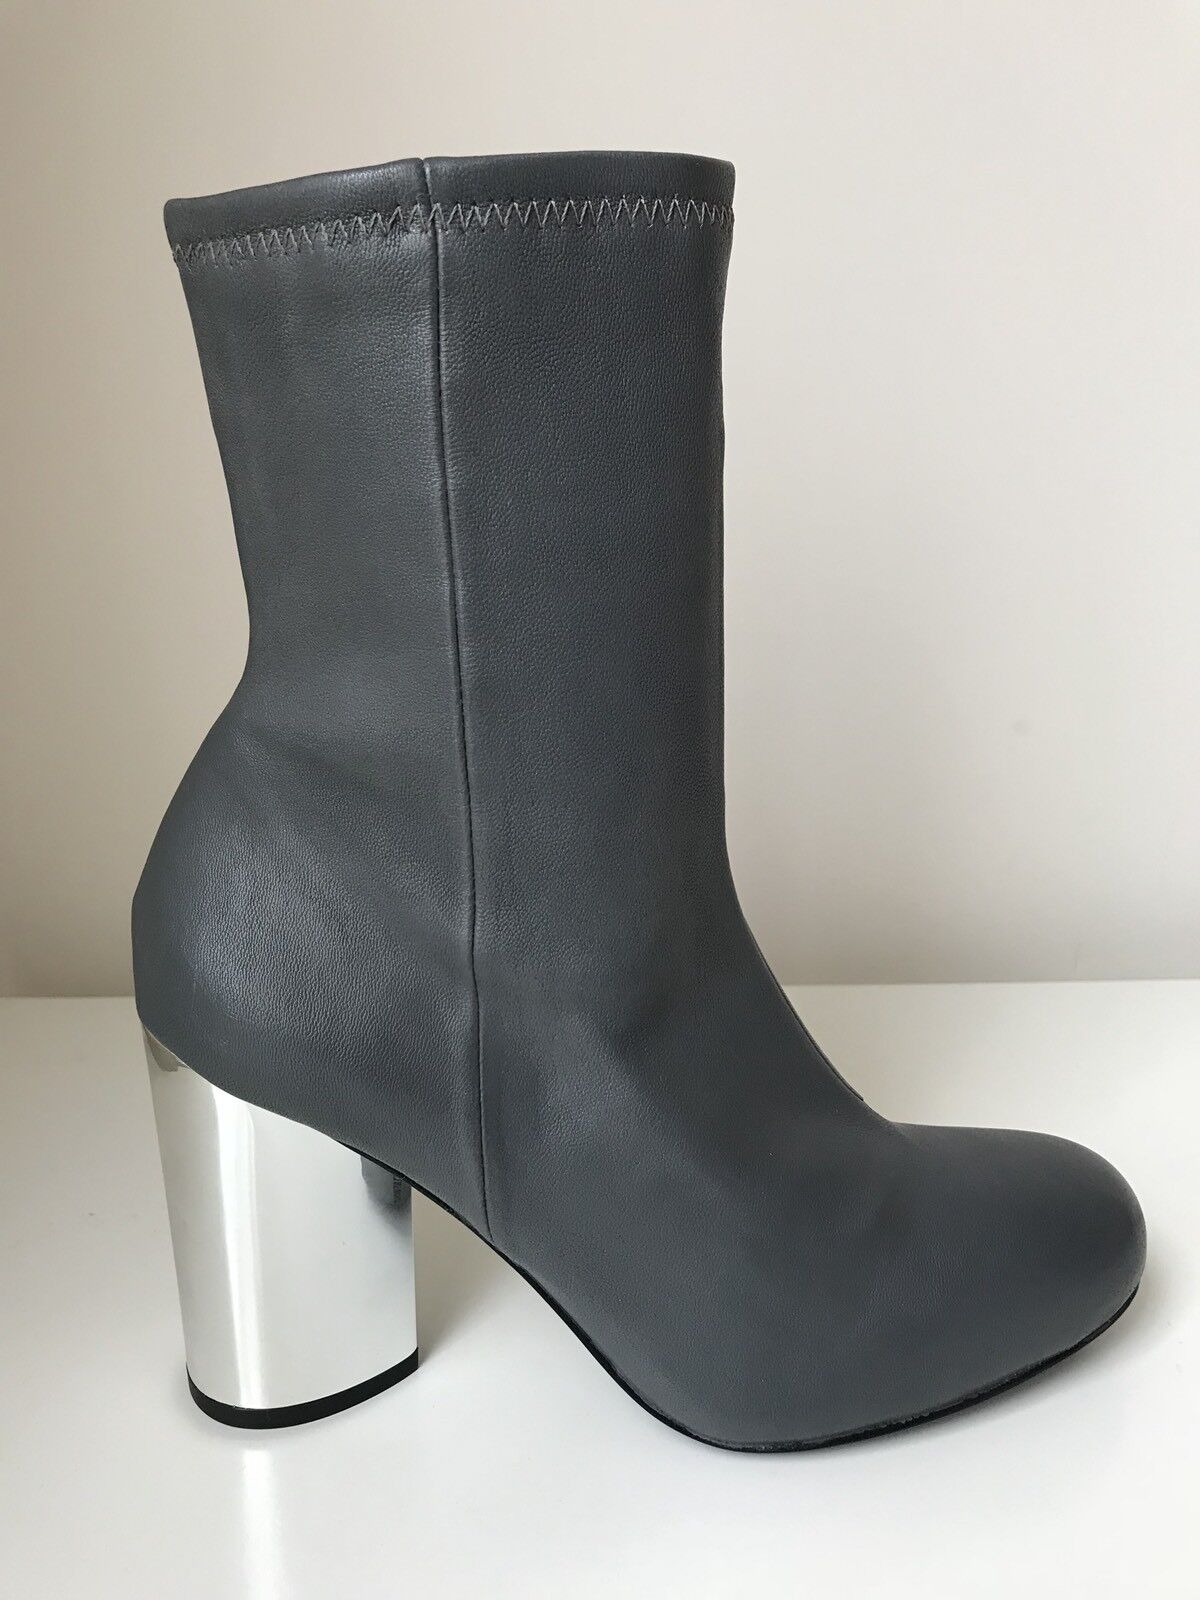 OPENING CEREMONY WOMENS DYLAN STRETCH LEATHER BOOT - GREY